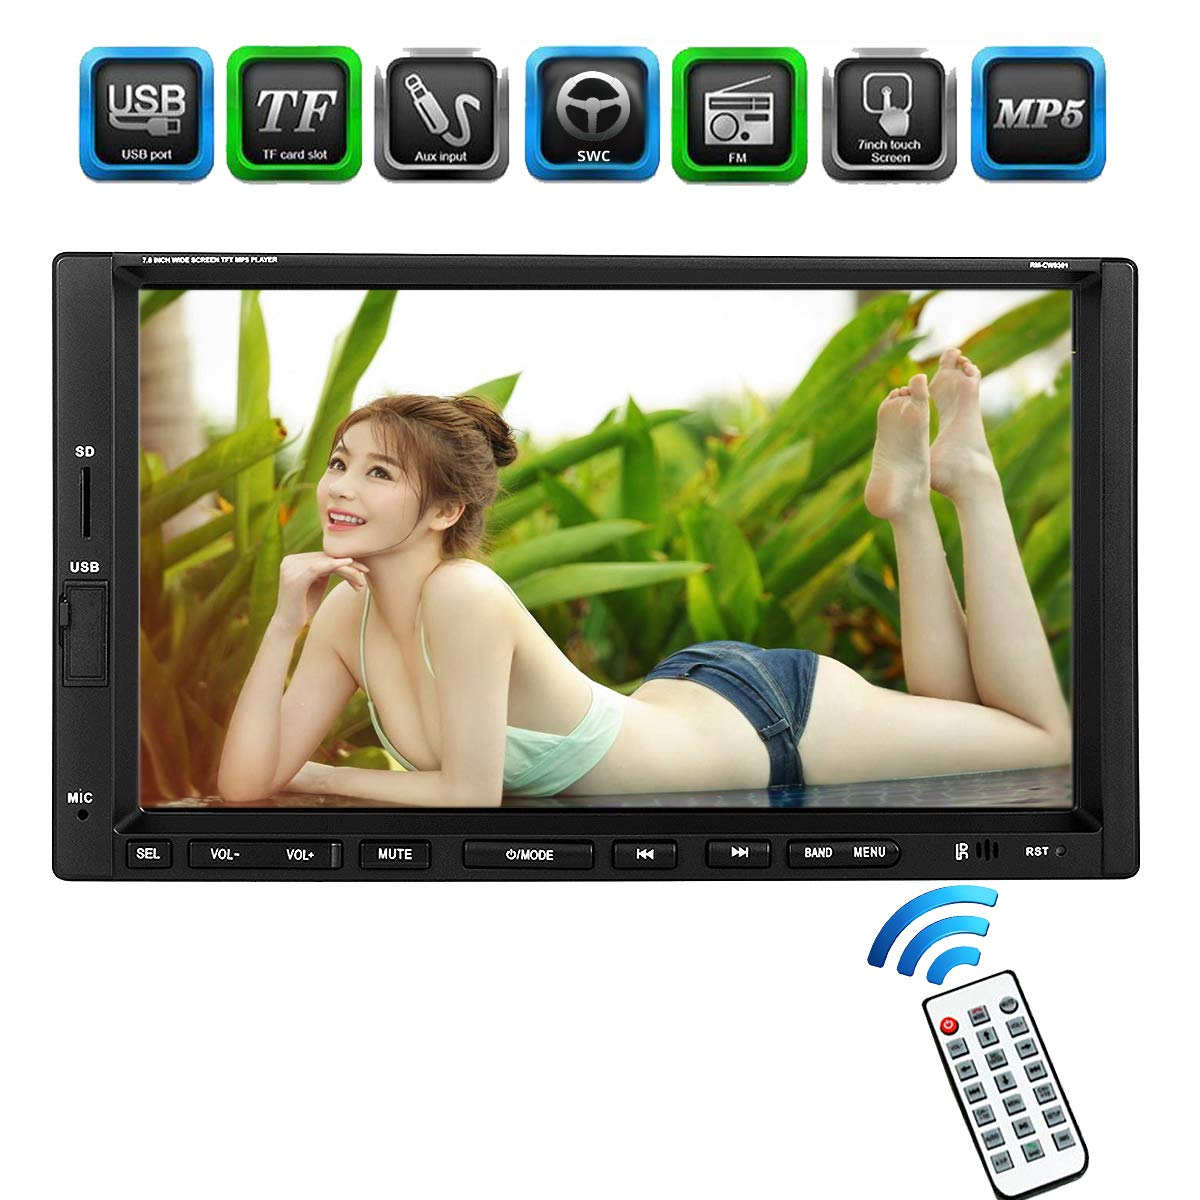 Ezonetronics Double Din Car Stereo 7 inches Indash Touch Screen Car Radio with Bluetooth USB SD MP5 Radio for Universal Cars (No DVD)